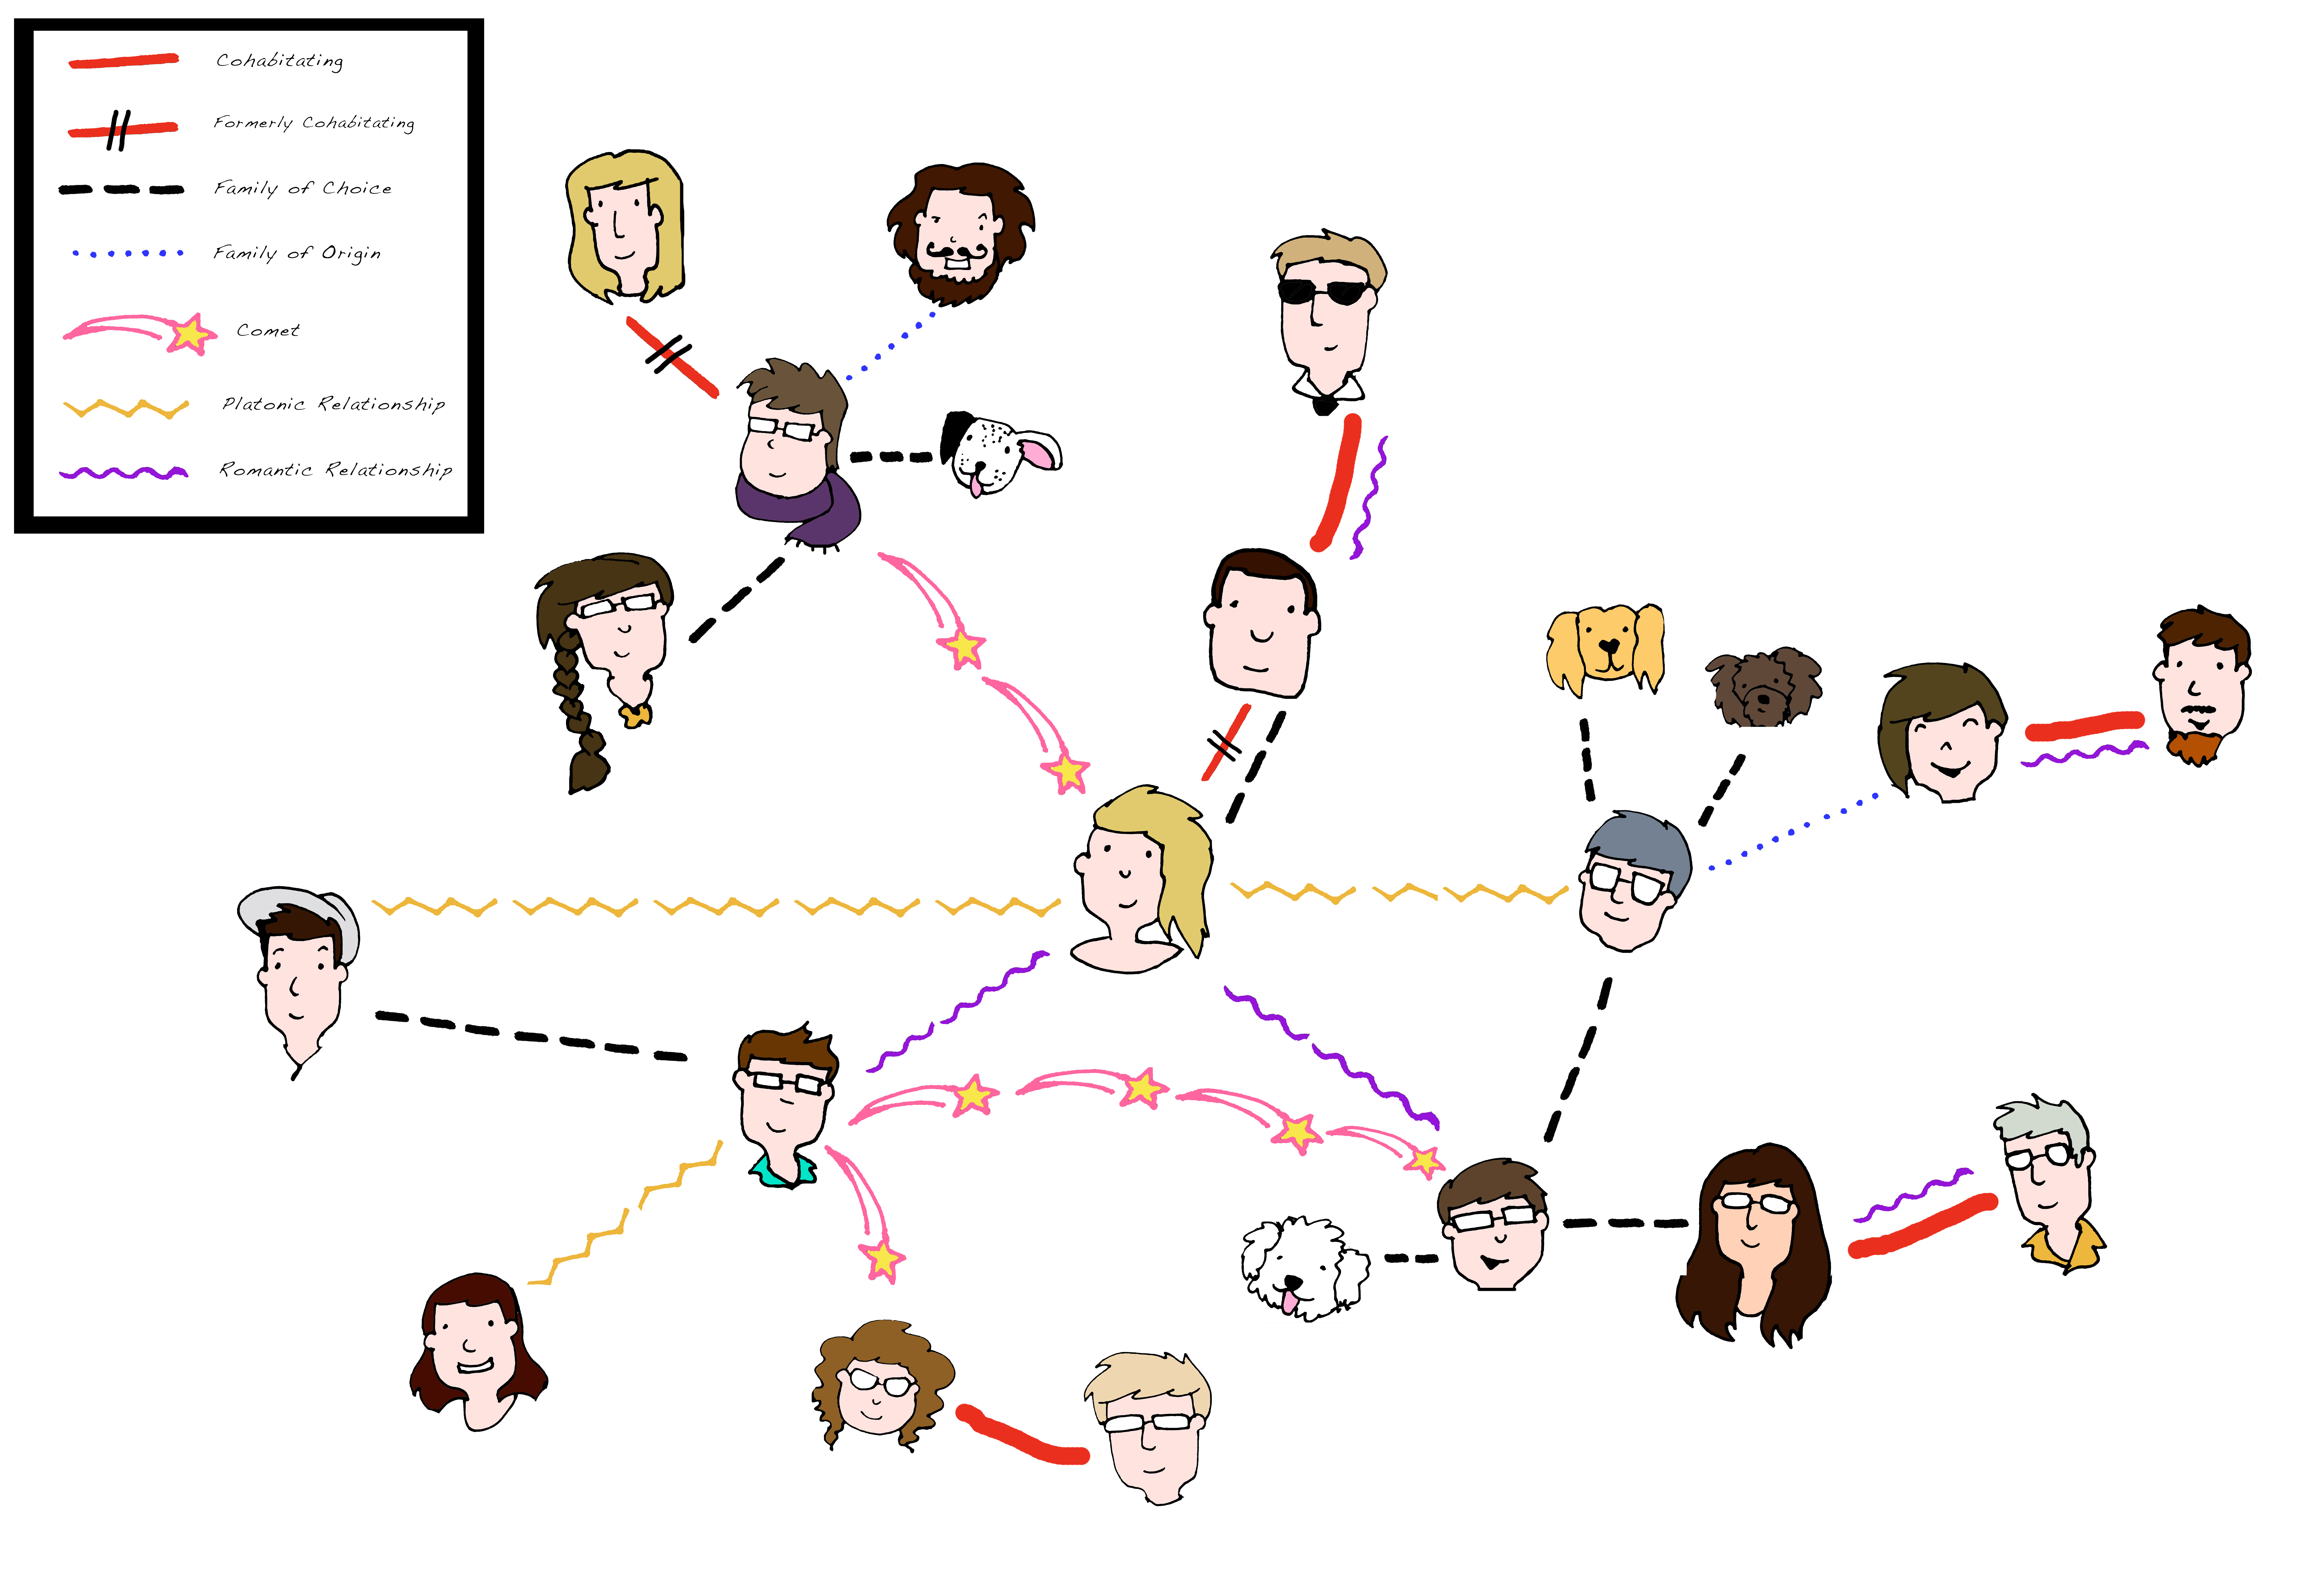 Cartoon picture of people linked with different kinds of connecting lines.